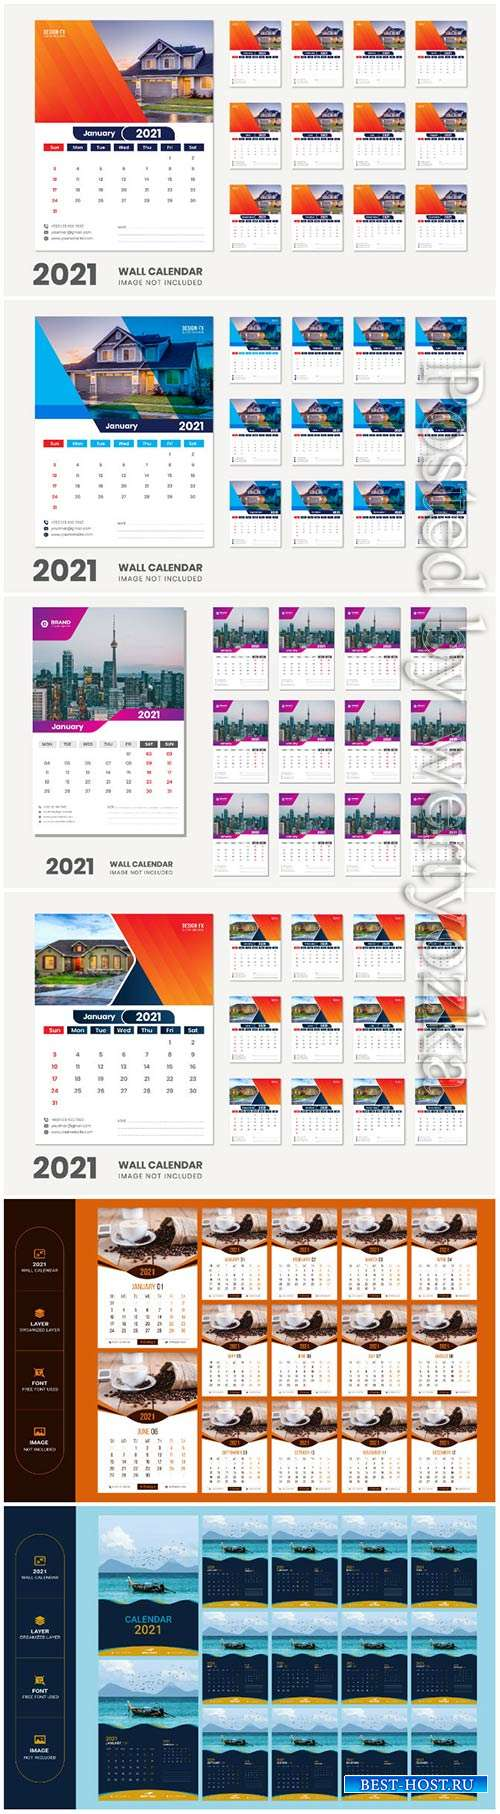 2021 desk calendar - 12 months included